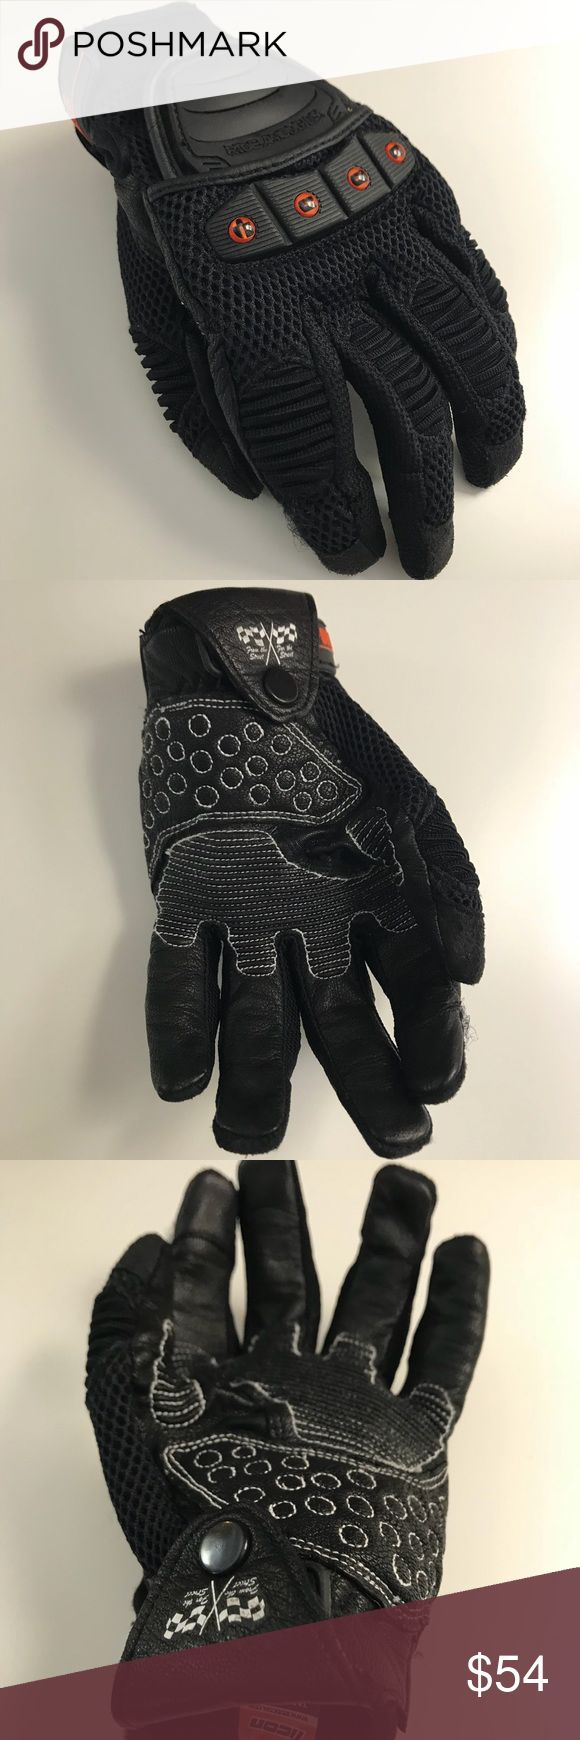 Icon motorcycle riding gloves Brand new Icon motorcycle riding gloves. Men's size small. Feel free to make an offer. ICON Accessories Gloves